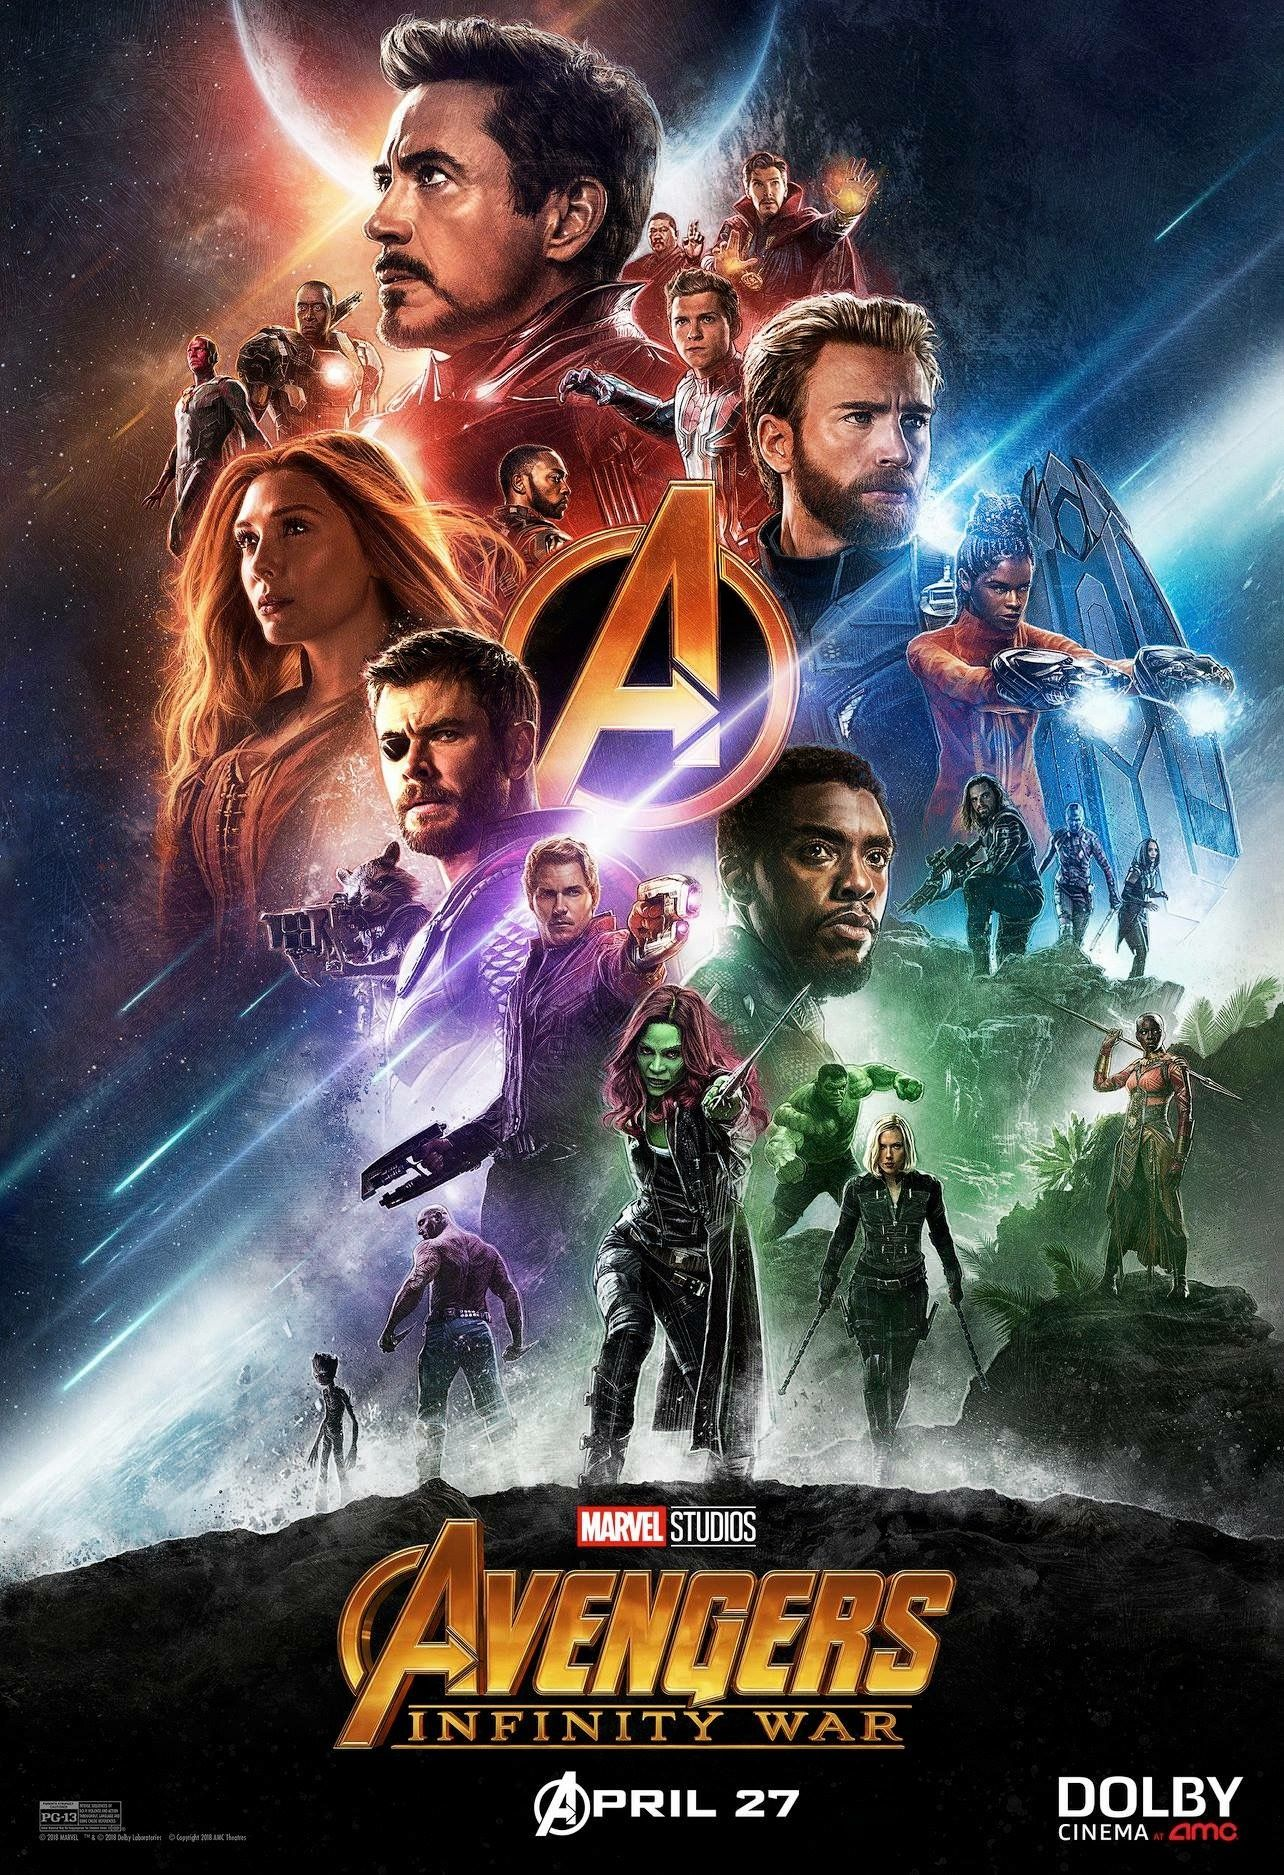 Avengers Infinity War With Images Avengers Movies Marvel